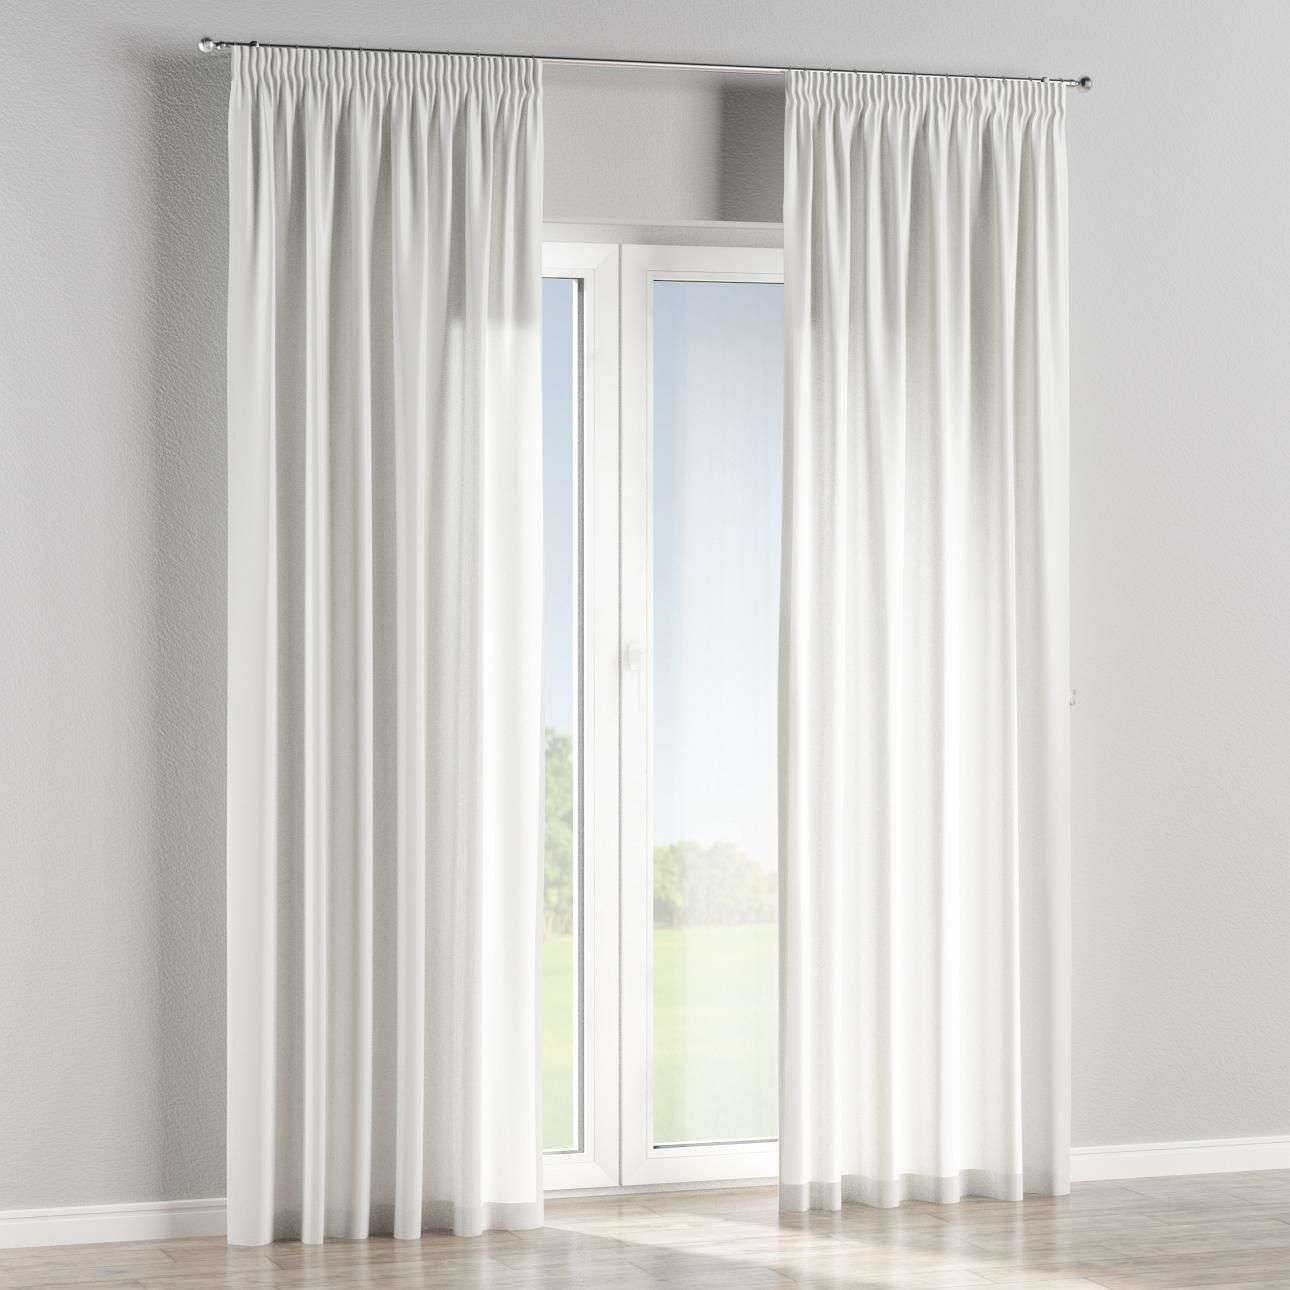 Pencil pleat curtains in collection Taffeta , fabric: 103-86